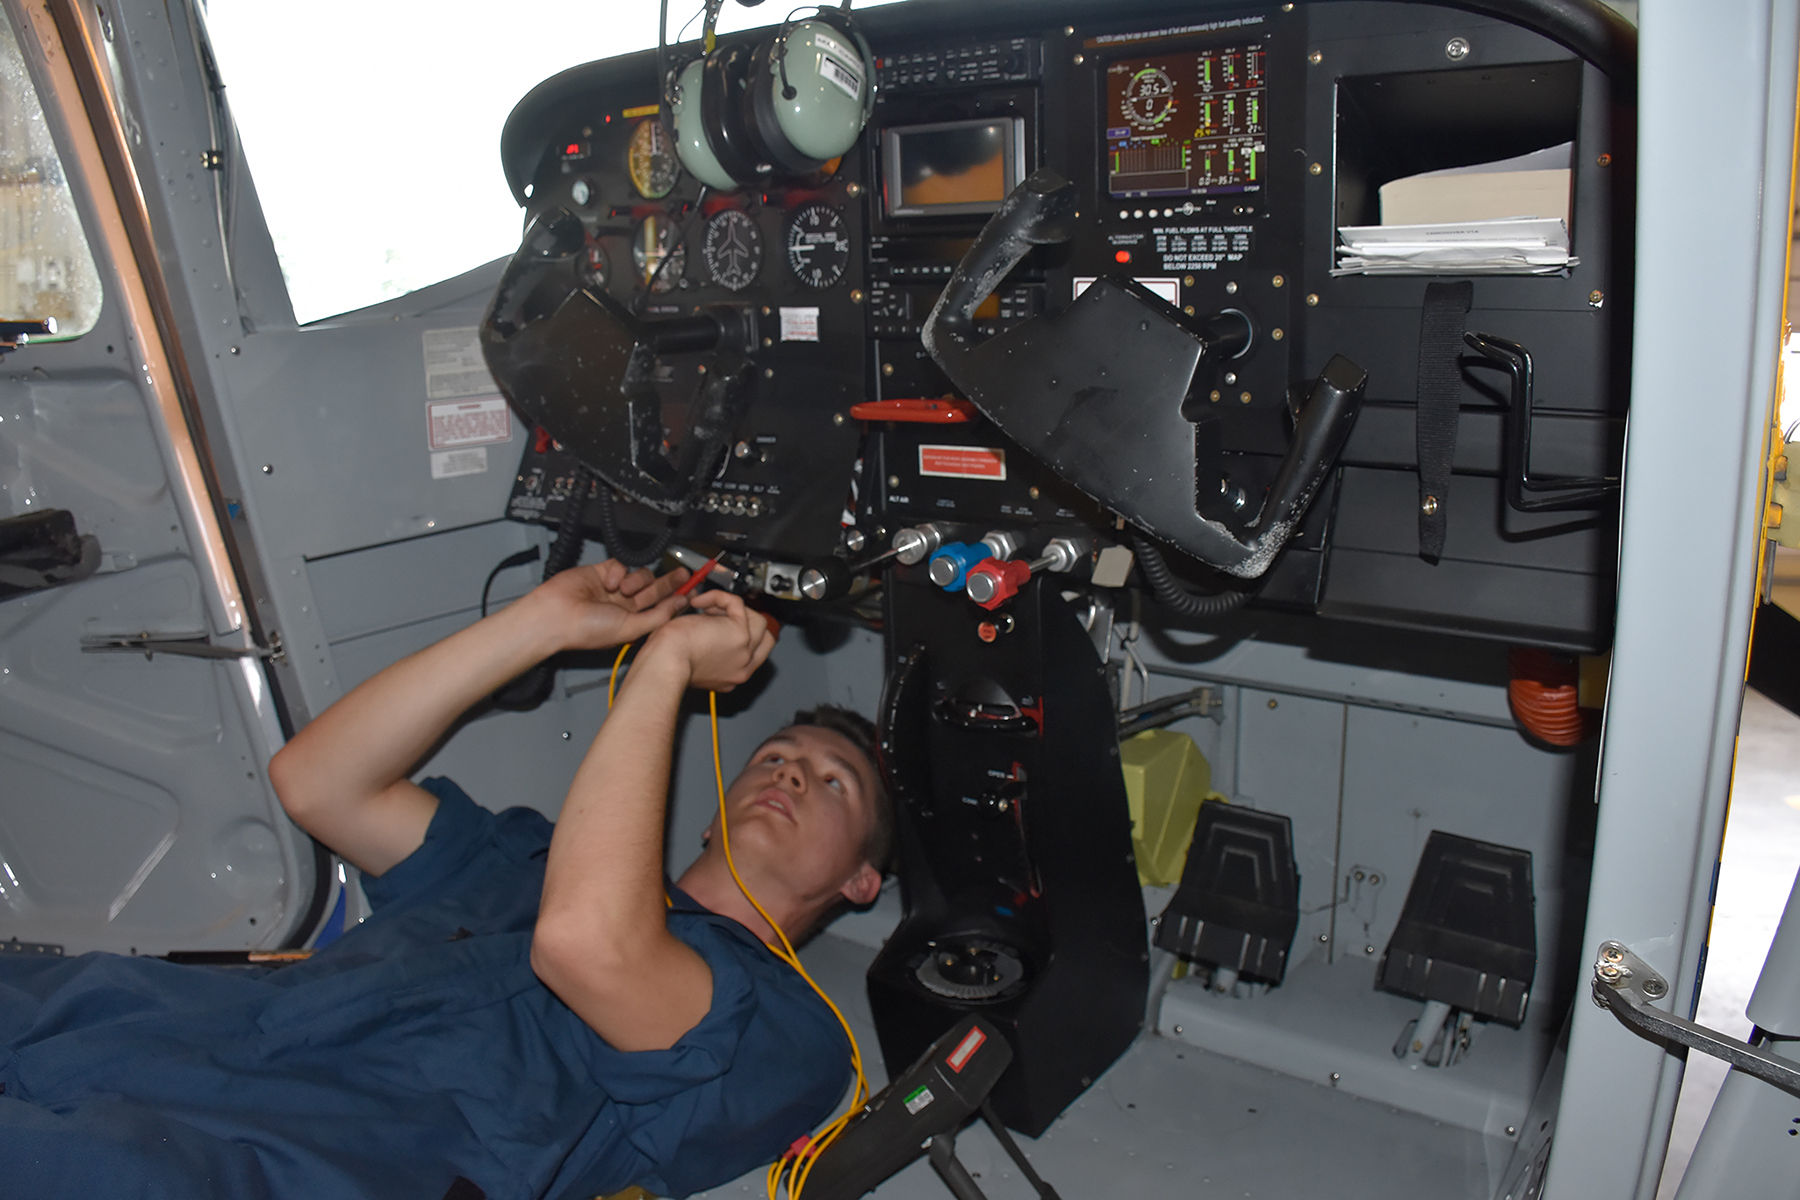 Staff Cadet Mitchell Mansfield tests electrical equipment in the cockpit of a tow plane at Comox Cadet Flying Training Centre, where he is working for the summer as an aircraft maintenance engineer. PHOTO: Captain Angela Sergent